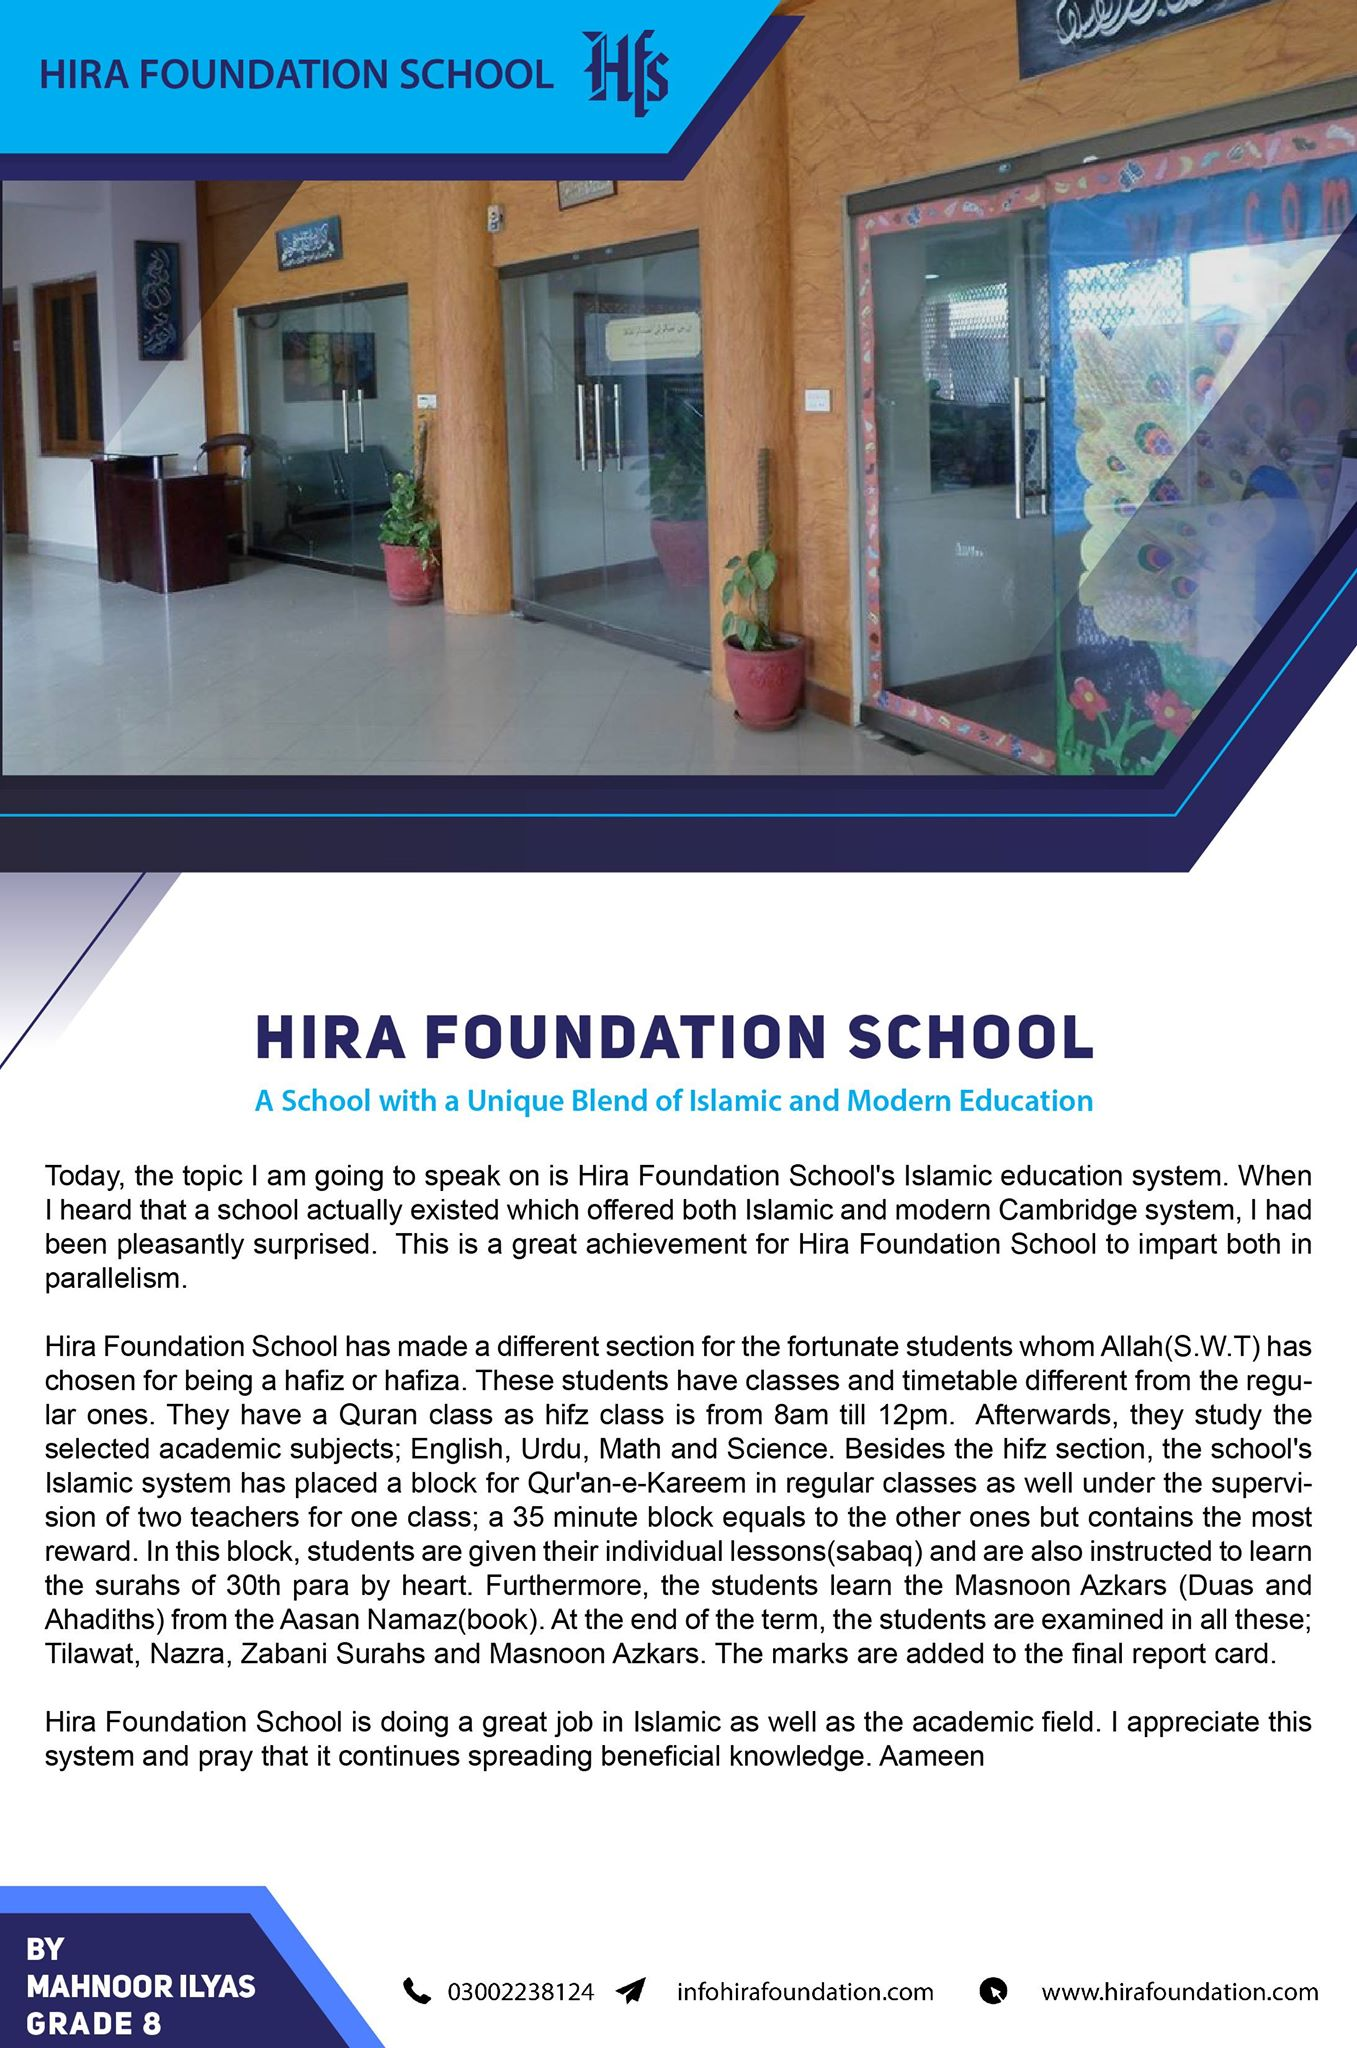 About HIRA FOUNDATION